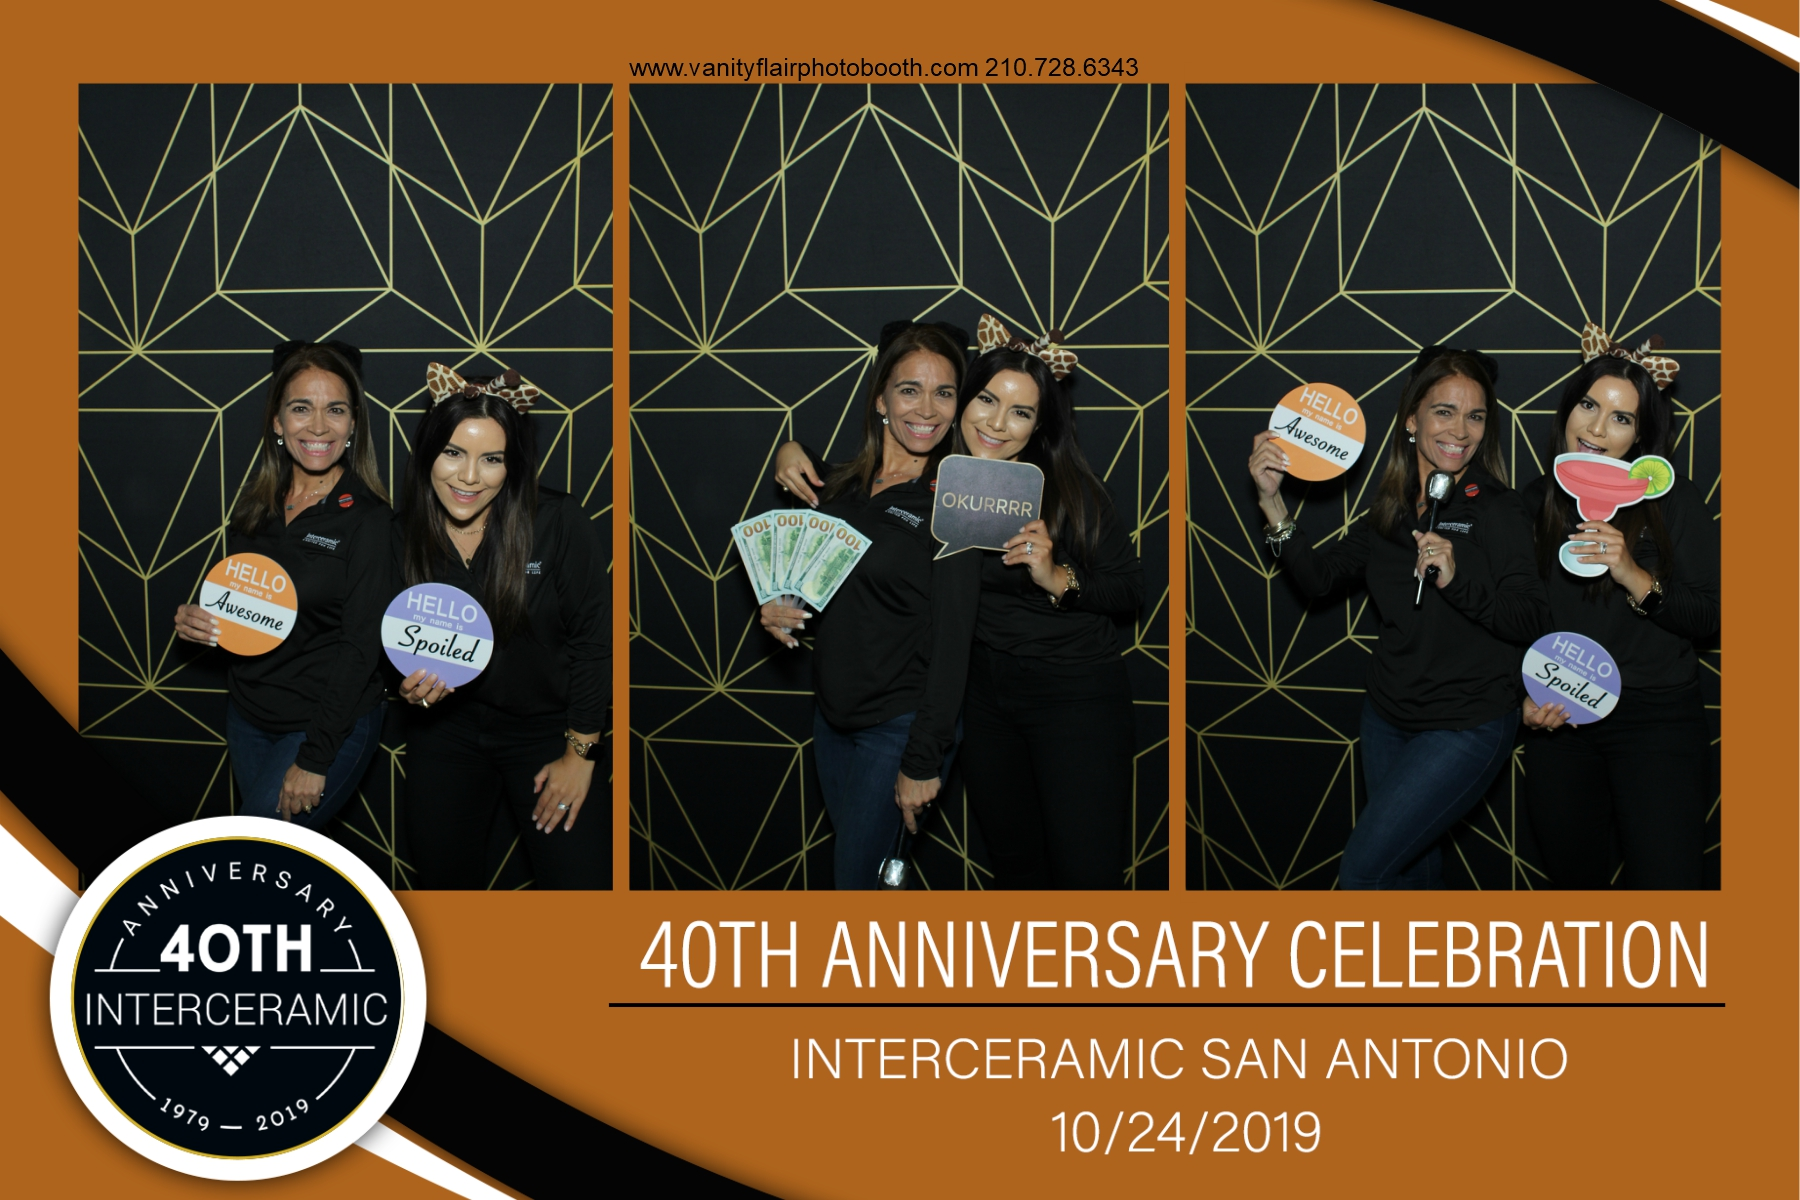 Corporate Anniversary Party Photo Booth Rental